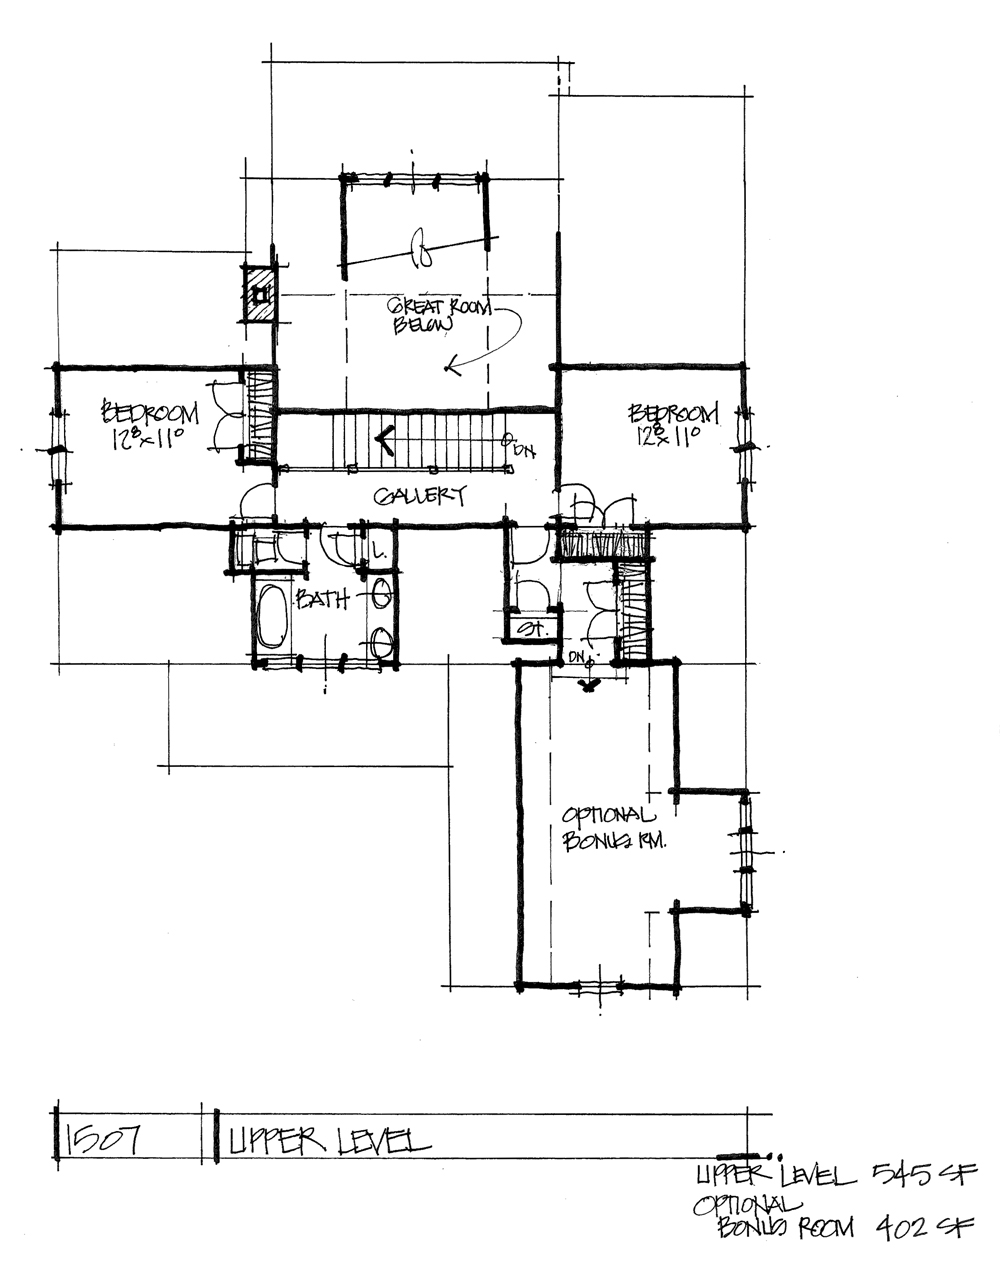 Check out the second floor of conceptual house plan 1507.